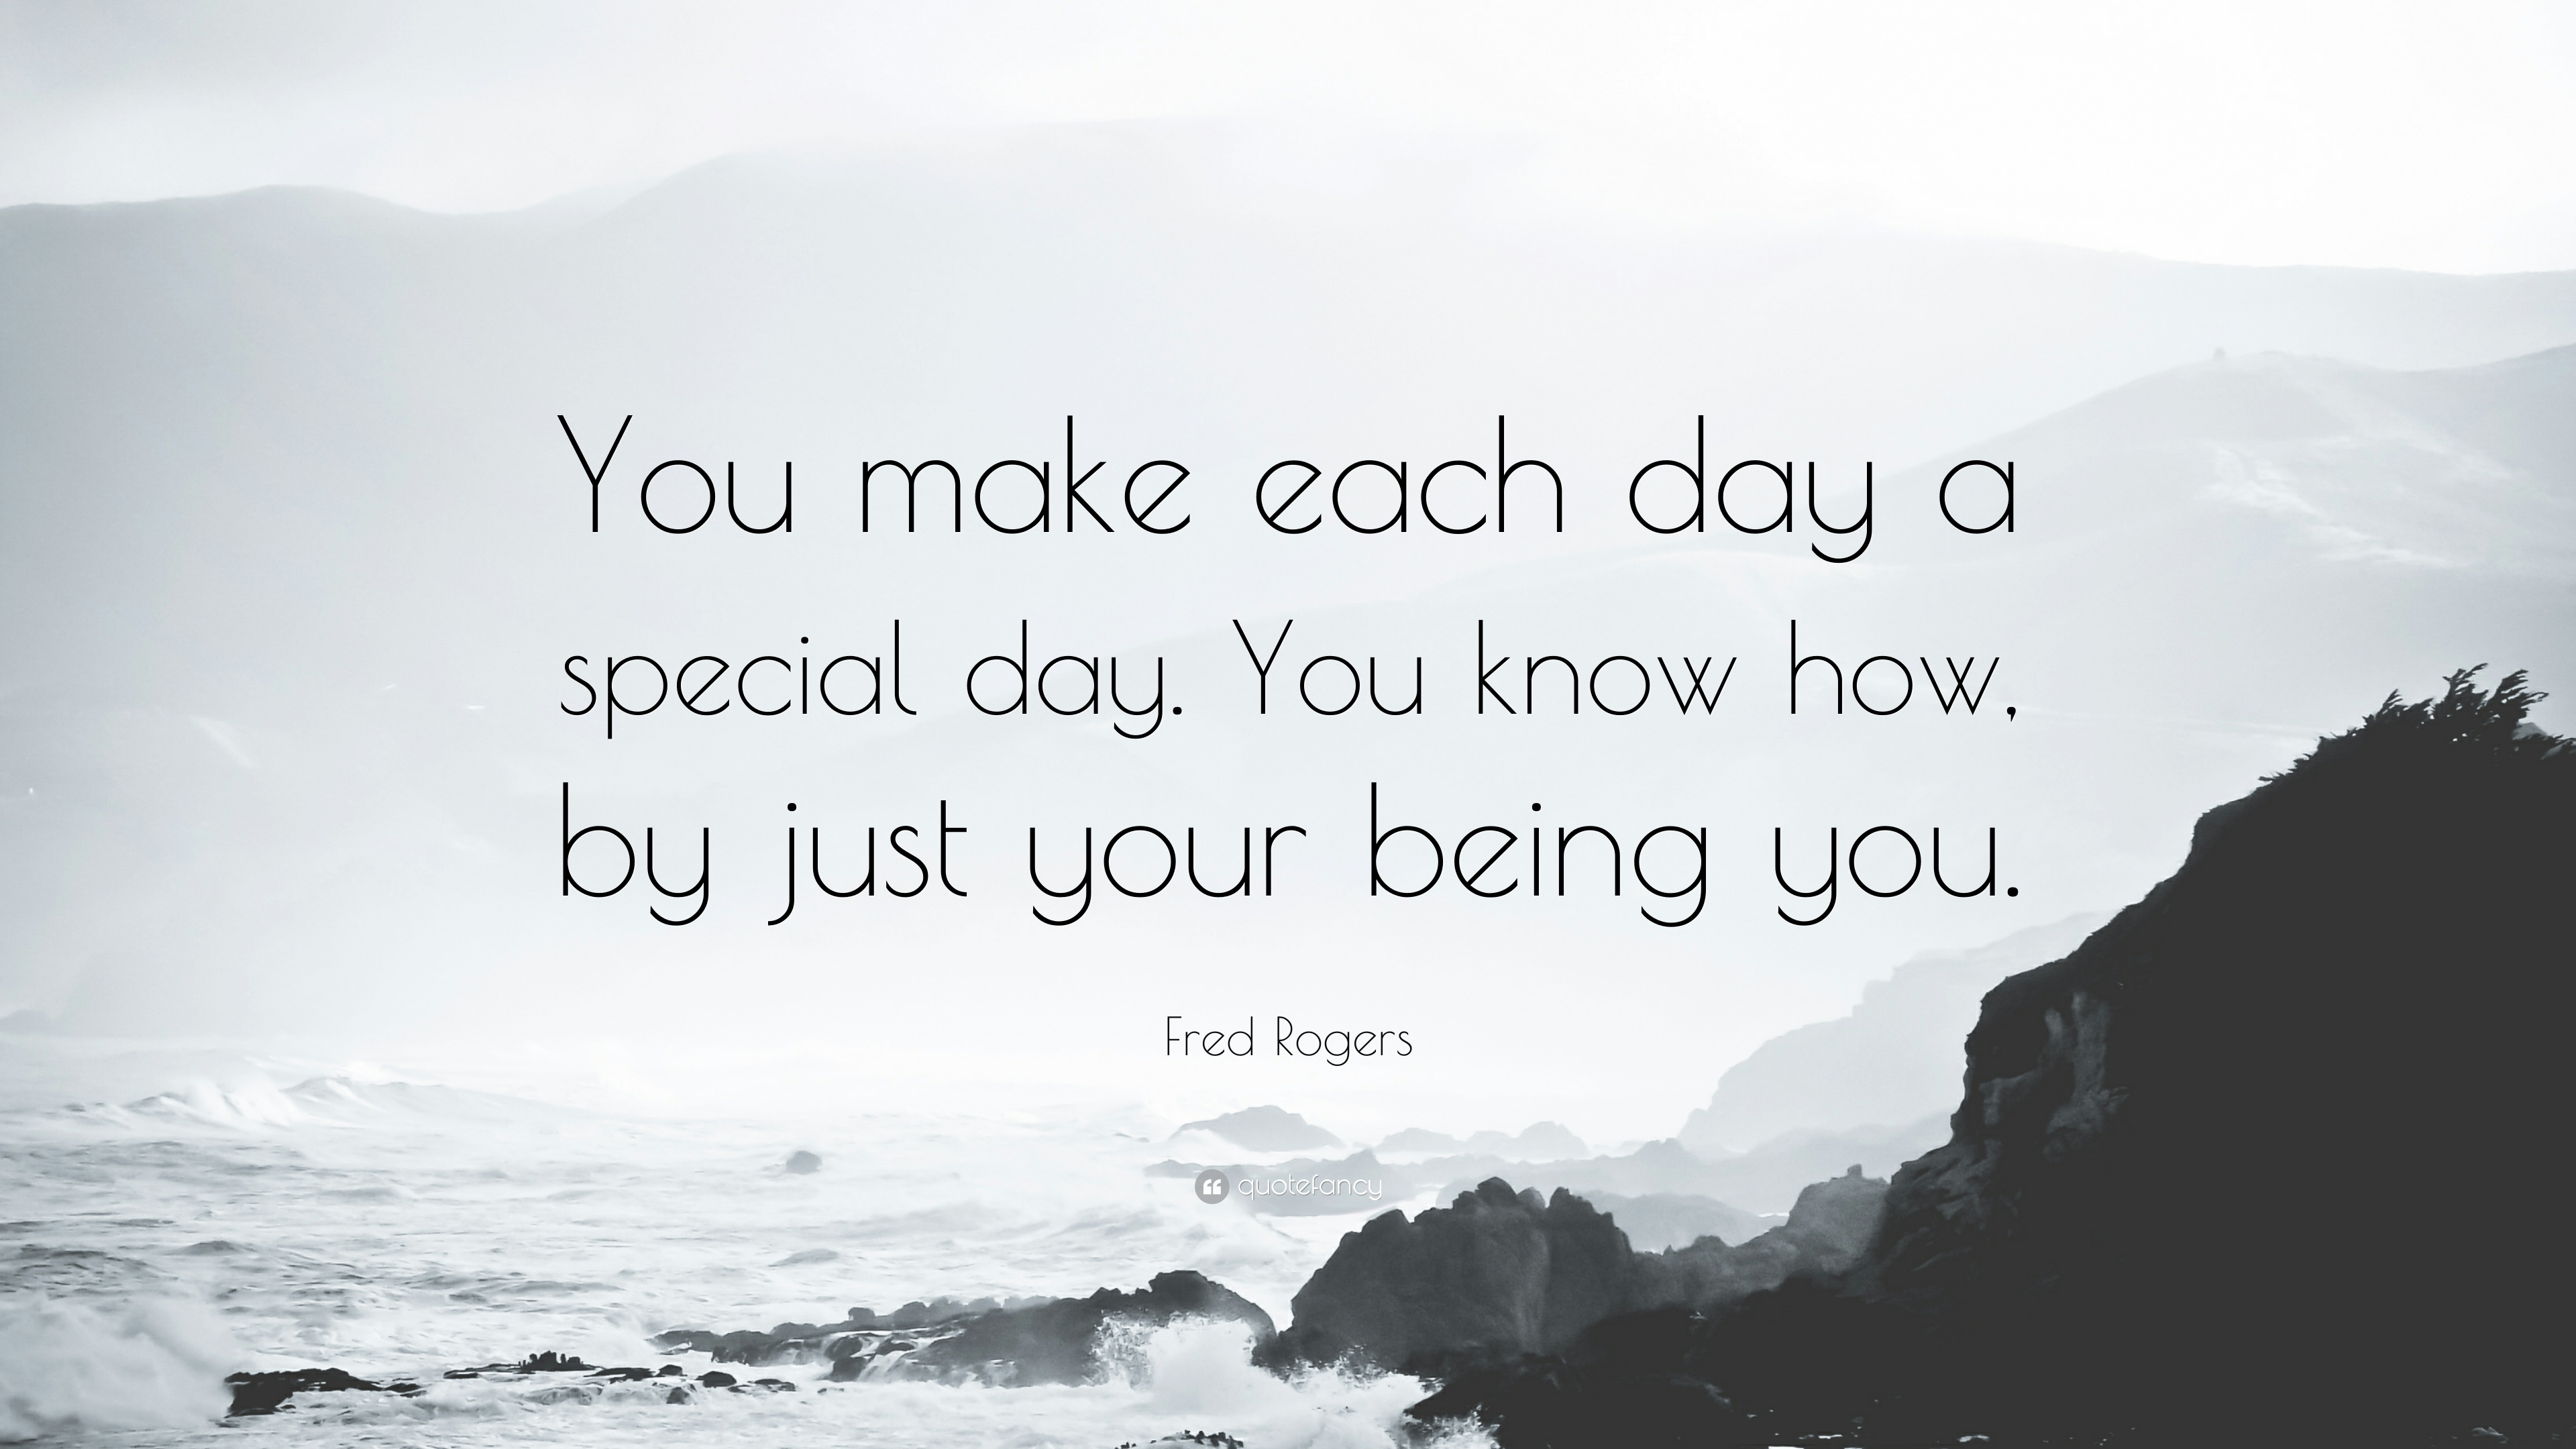 Fred rogers quote you make each day a special day you know how fred rogers quote you make each day a special day you know how altavistaventures Image collections